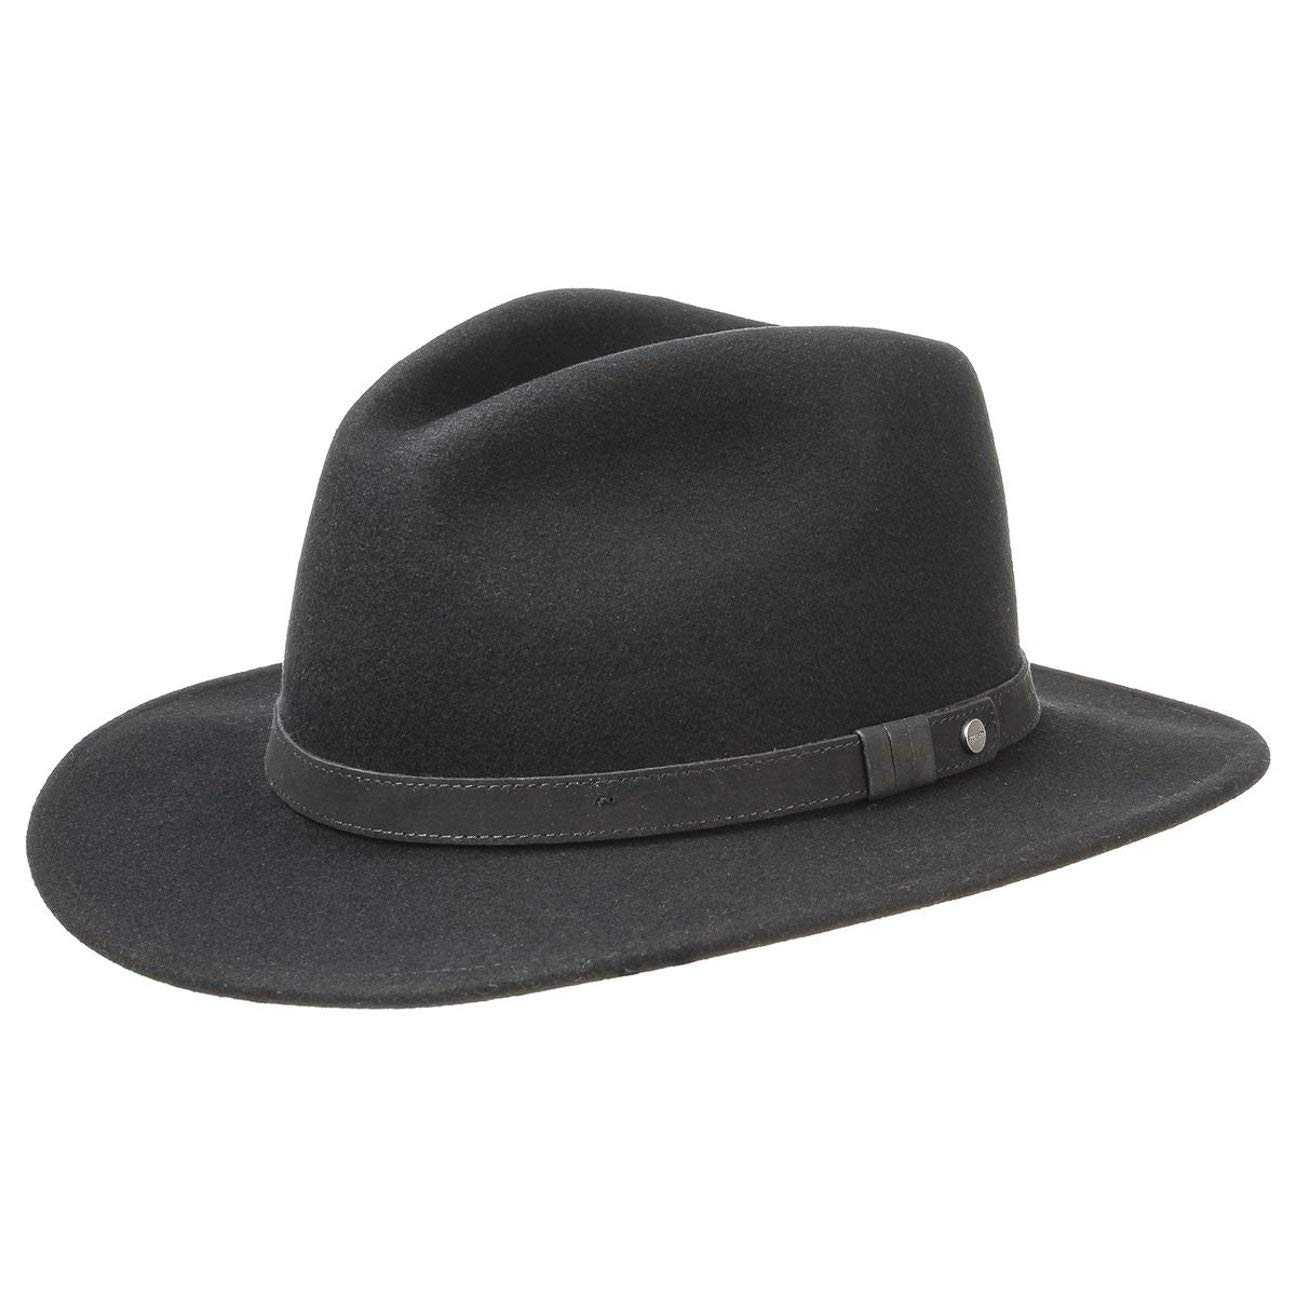 9602a3697c001 Stetson Yutan Wool Hat Women Men at Amazon Men s Clothing store